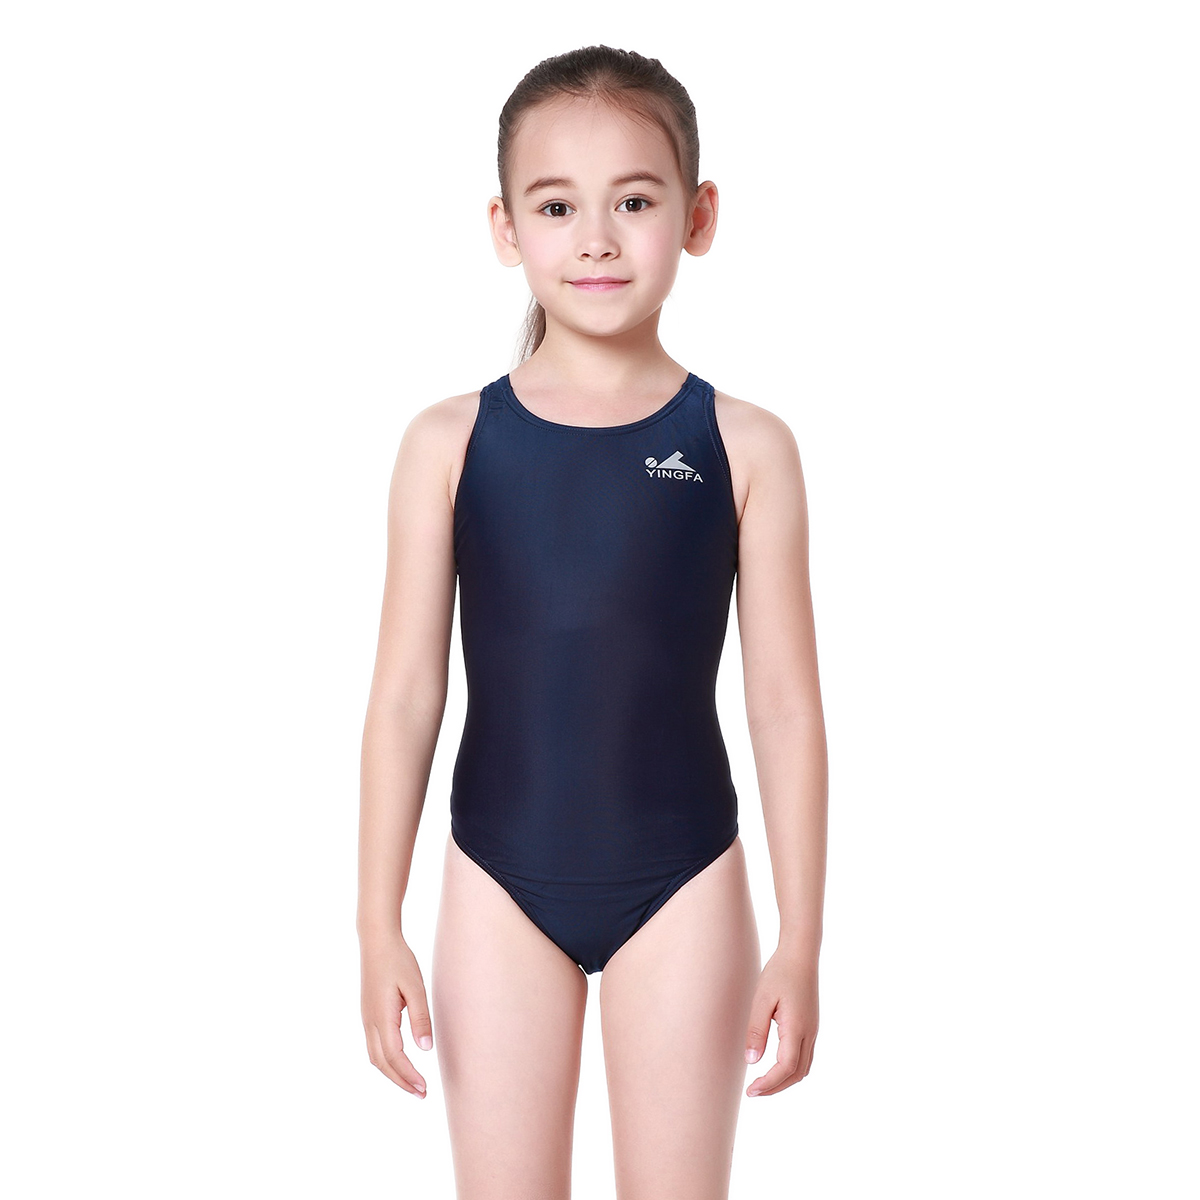 6d1e6eb6ca2 Get Quotations · Children's swimwear yingfa classic solid net surface  environmental fabric piece swimsuit ms. professional fitness training